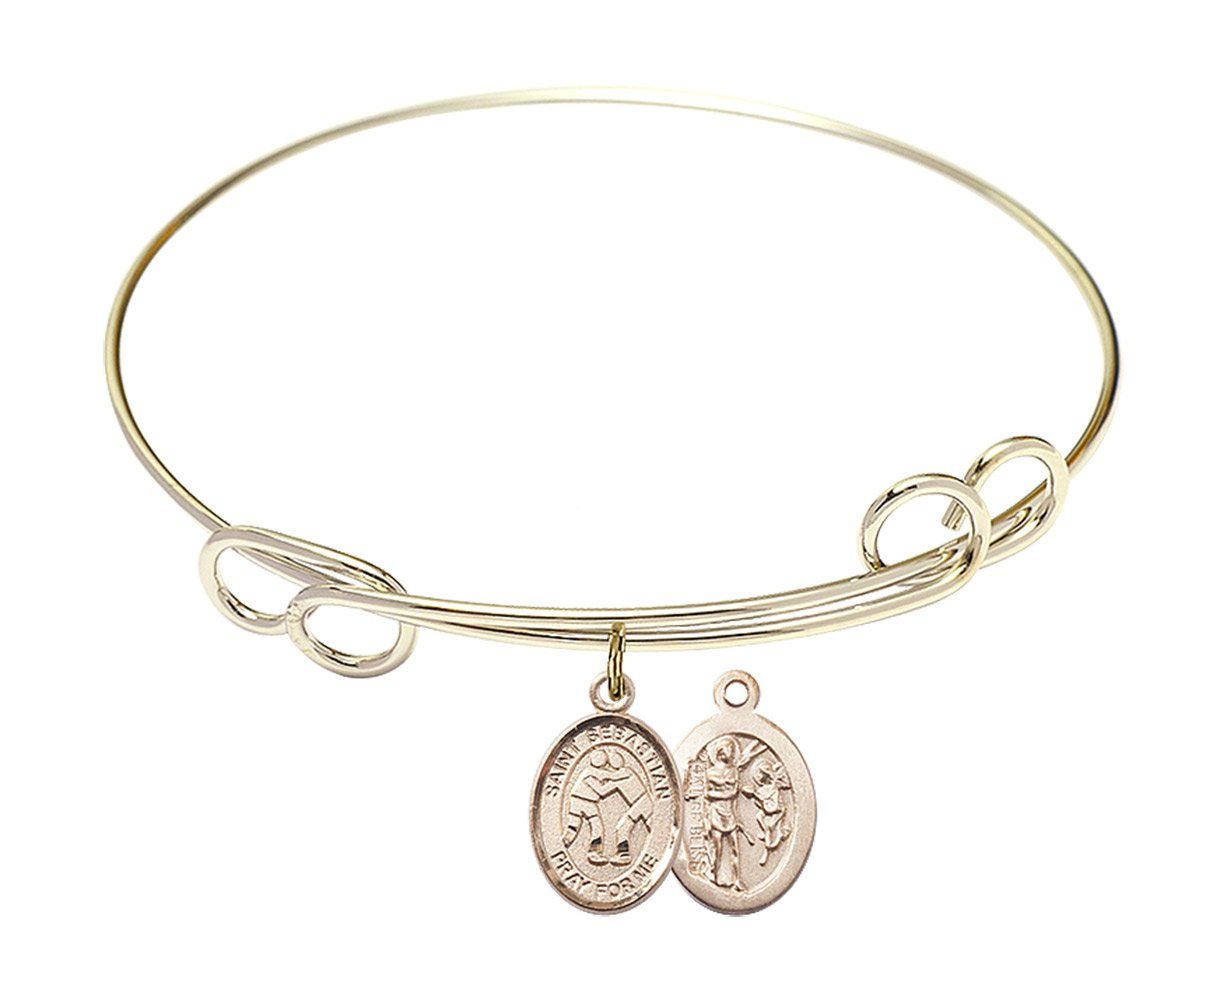 7 1/2 inch Round Double Loop Bangle Bracelet w/ St. Sebastian/Wrestling in Gold-Filled